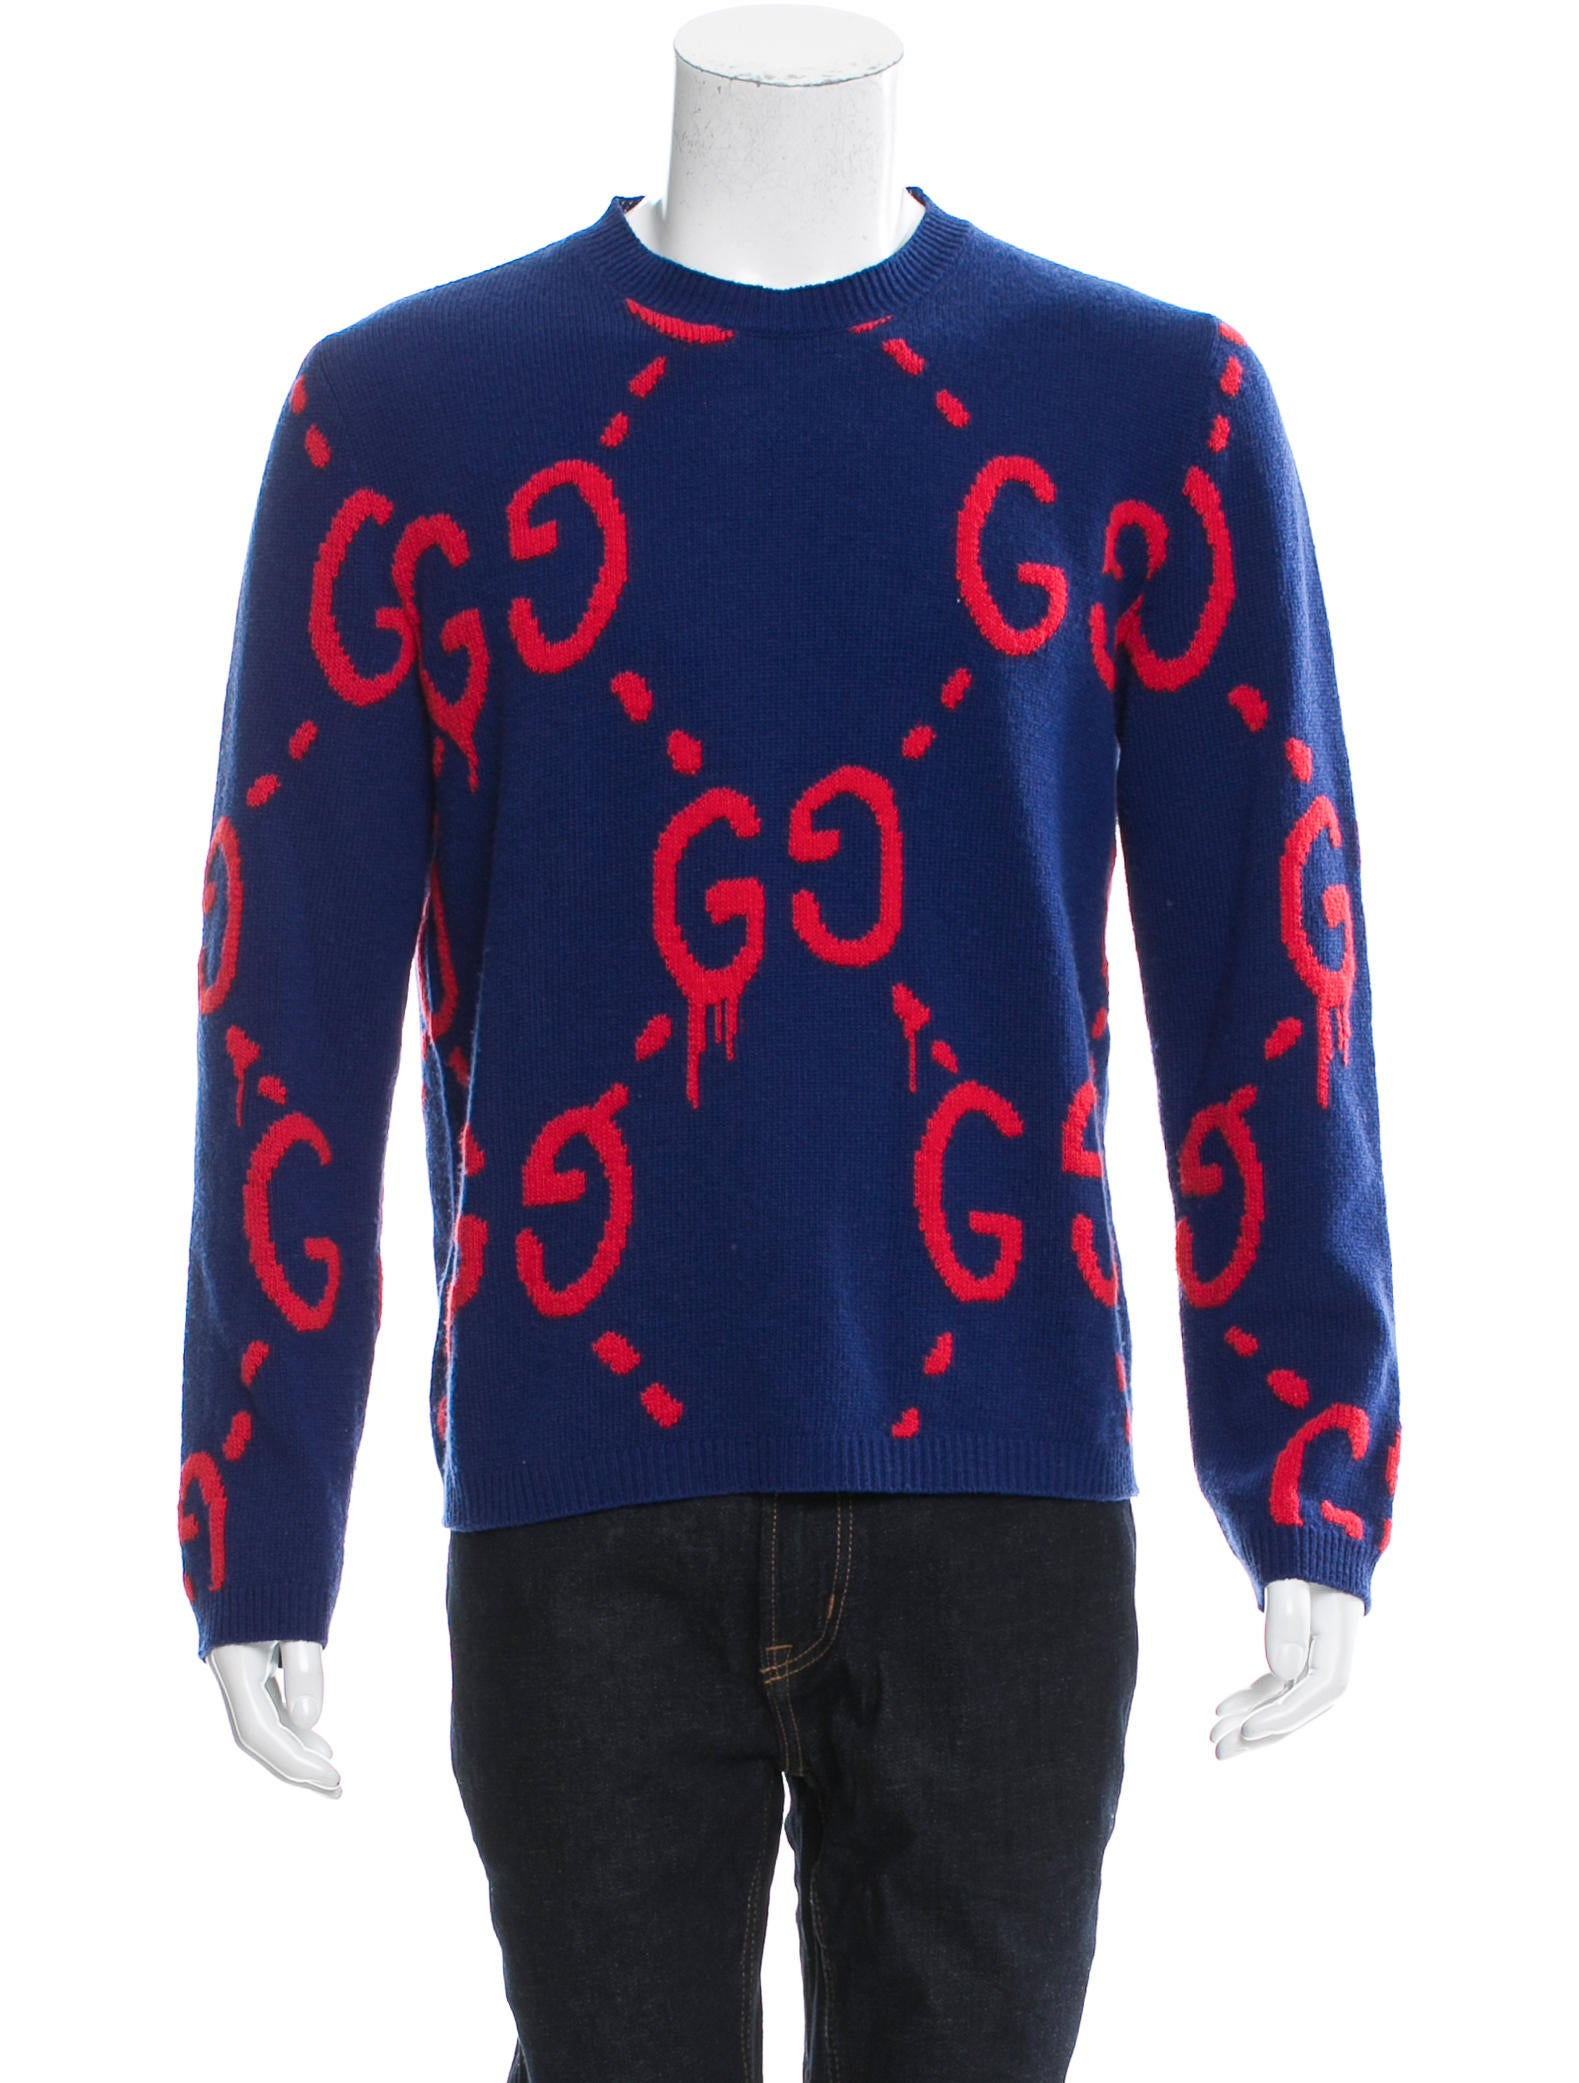 582a7fc9 Gucci GG Ghost Sweater - Clothing - GUC151525 | The RealReal